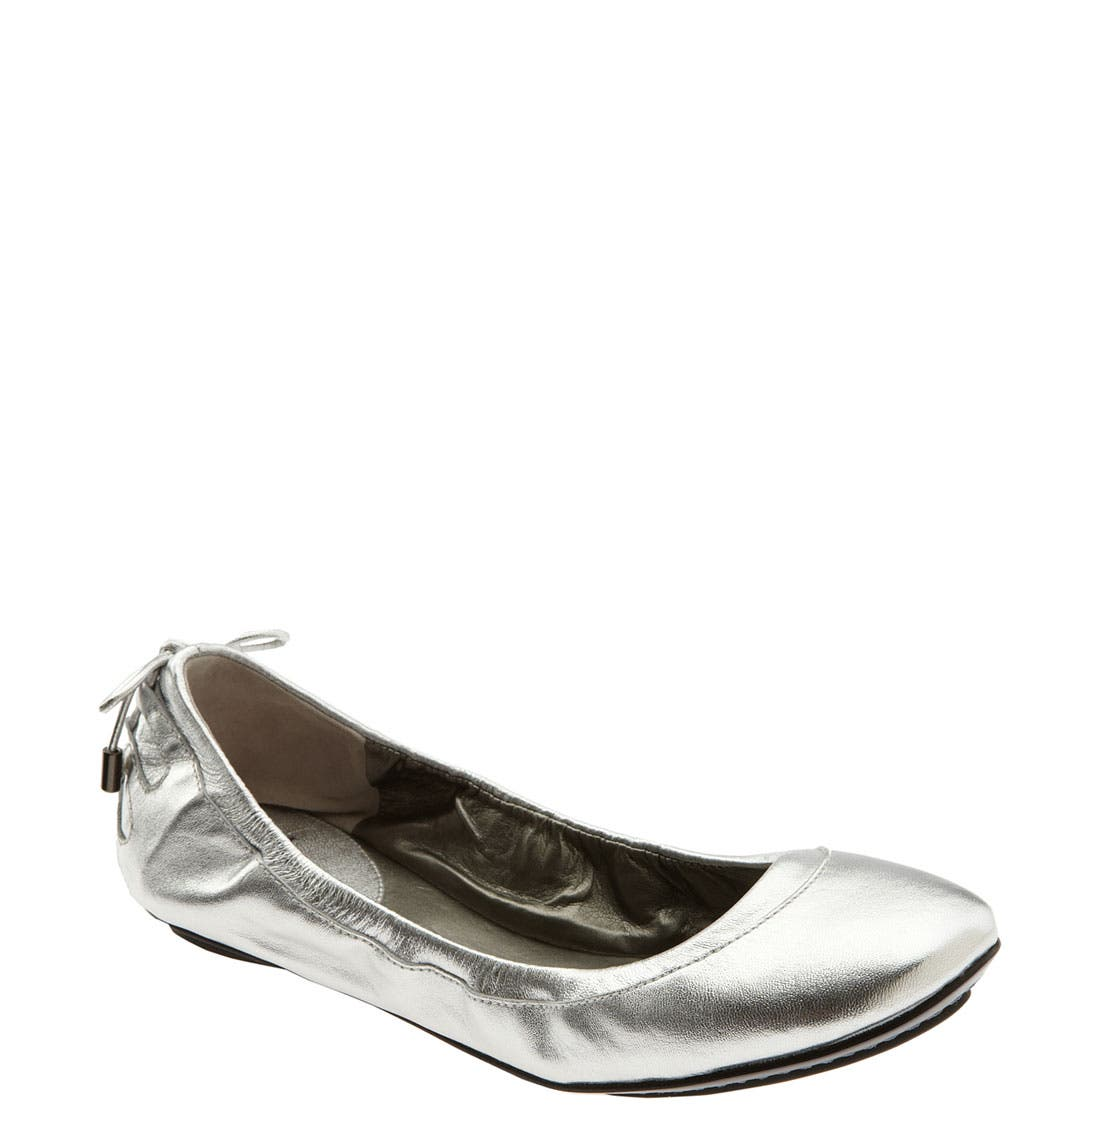 ,                             Maria Sharapova by Cole Haan 'Air Bacara' Flat,                             Main thumbnail 13, color,                             040